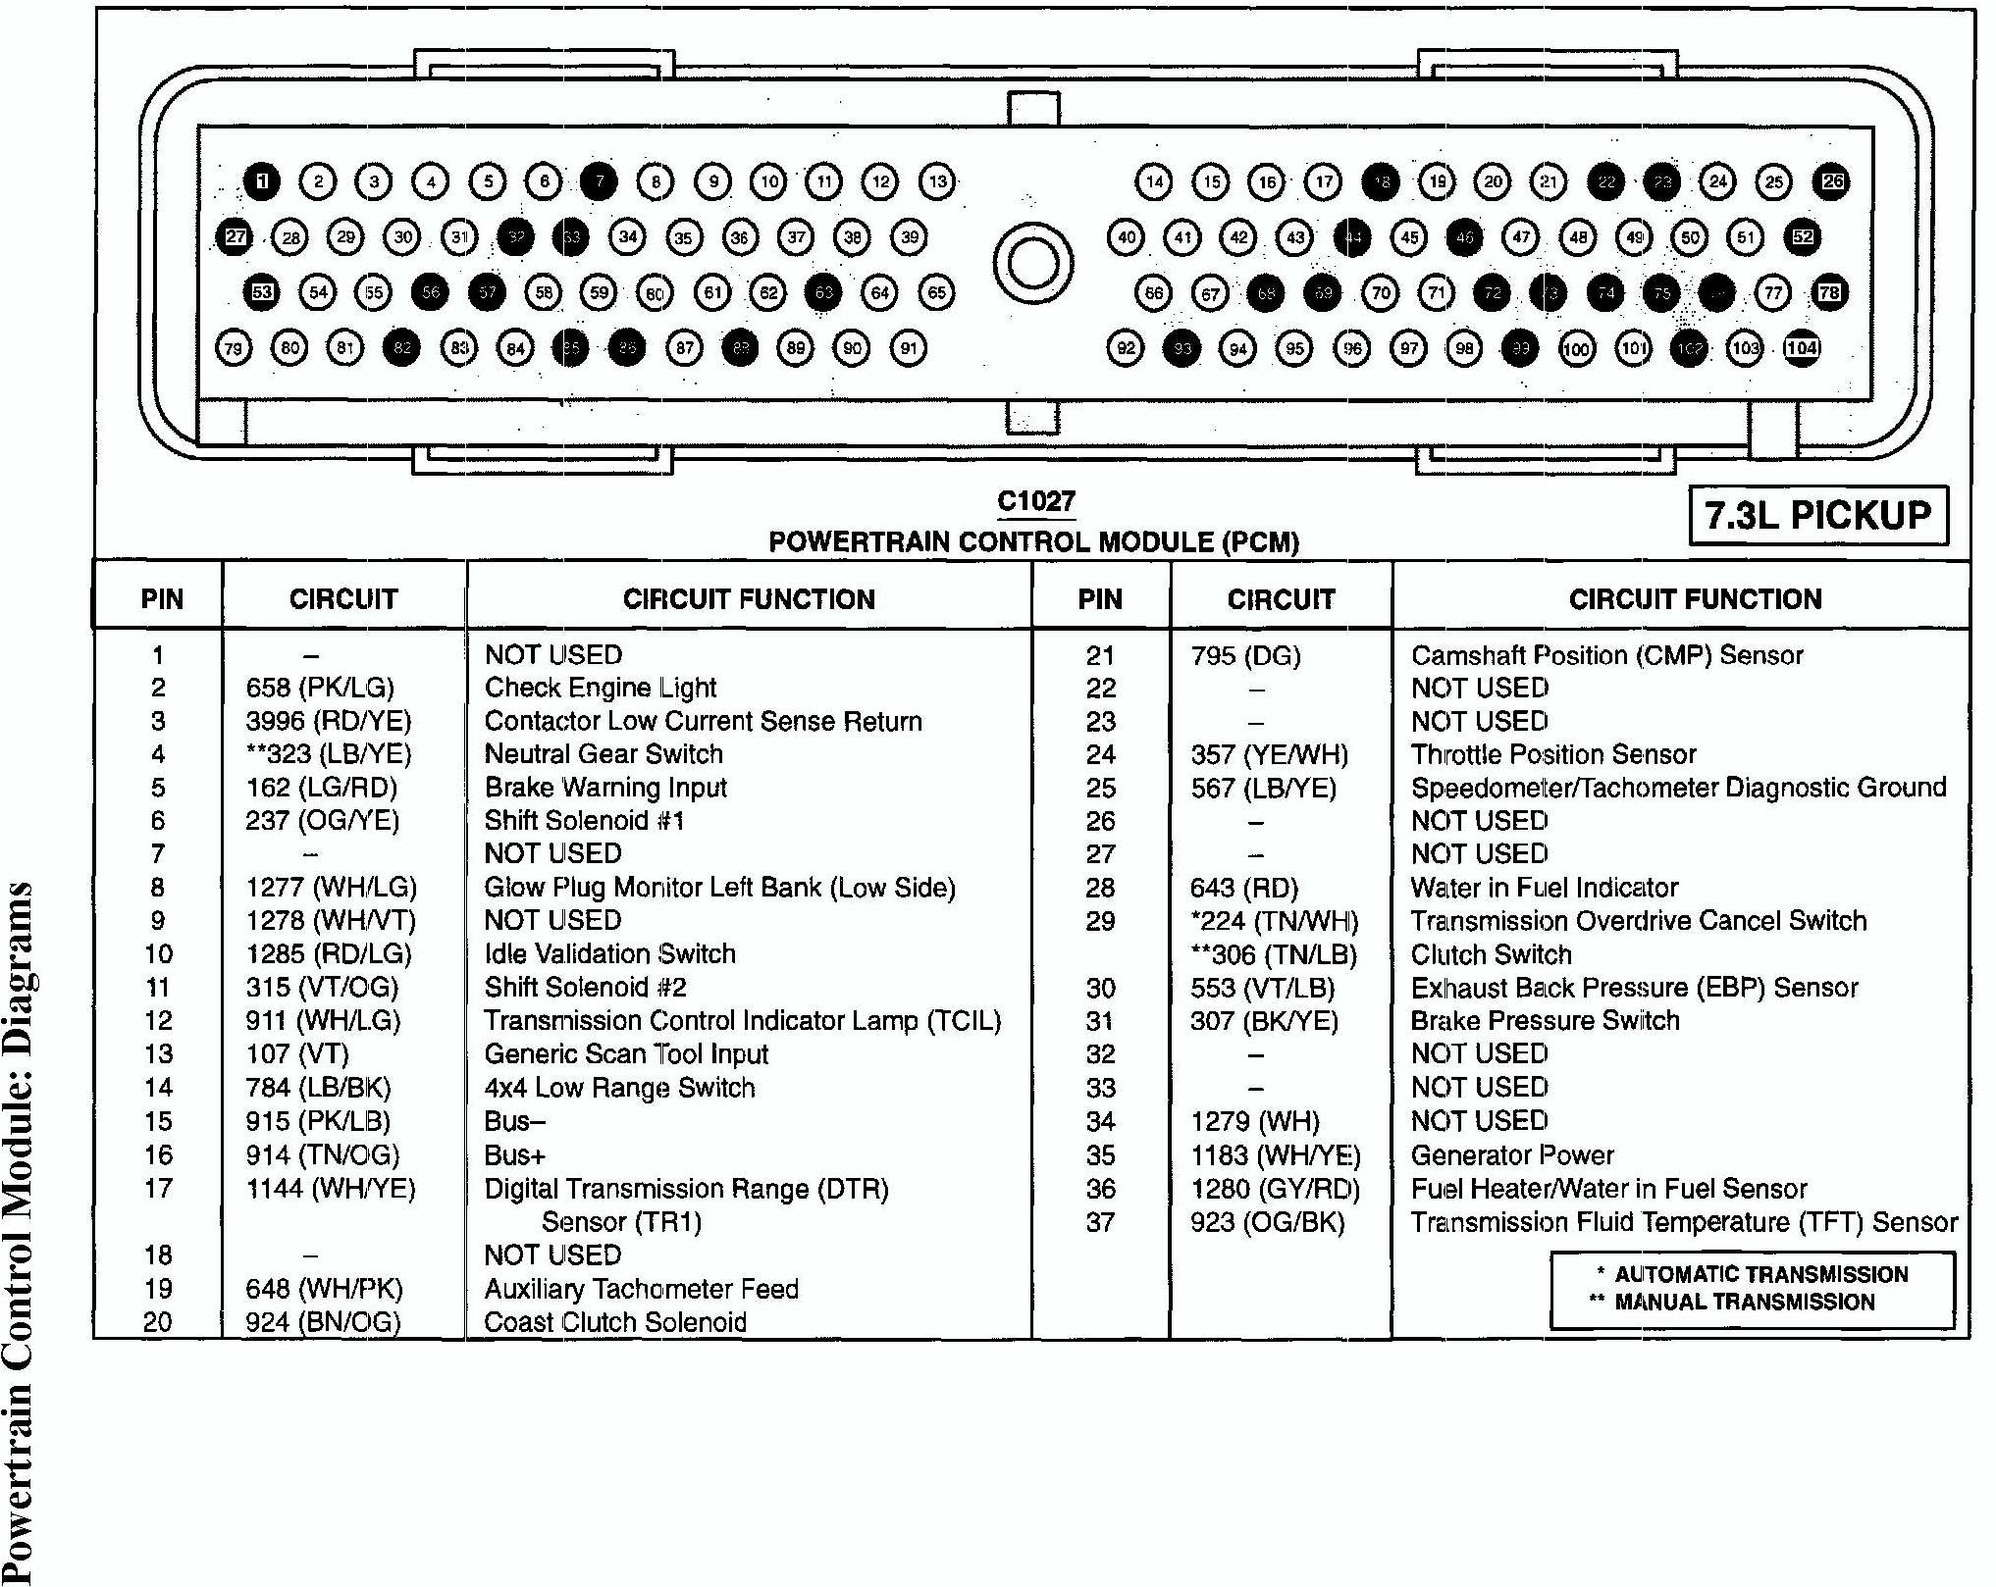 2000 Ford F150 Pcm Wiring Diagram Diagrams 2001 Pdf Fuse Keeps Blowing Free Engine Image For User F 150 Starter